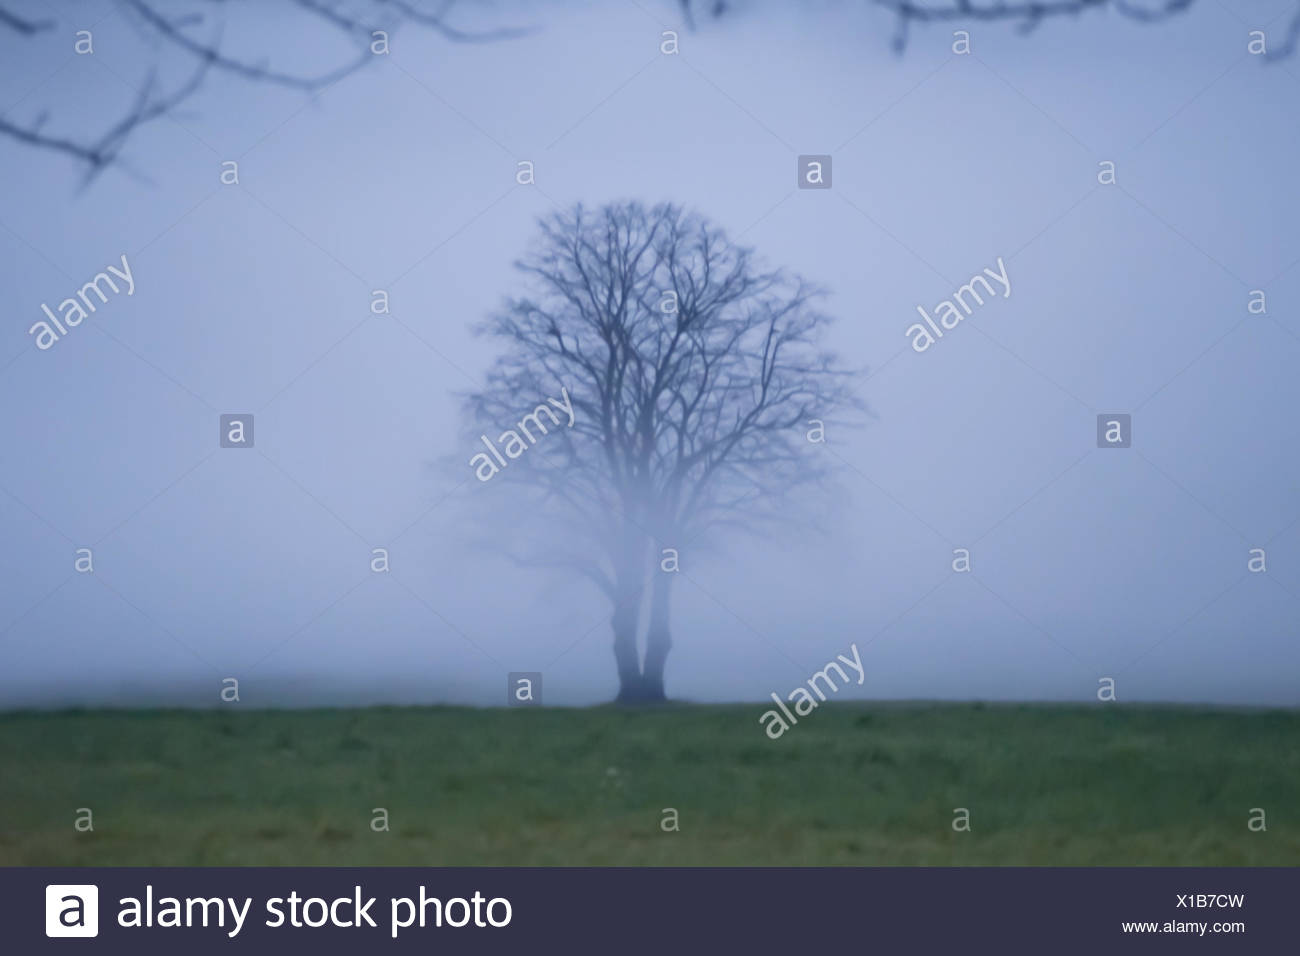 lonely tree in fog, blur - Stock Image